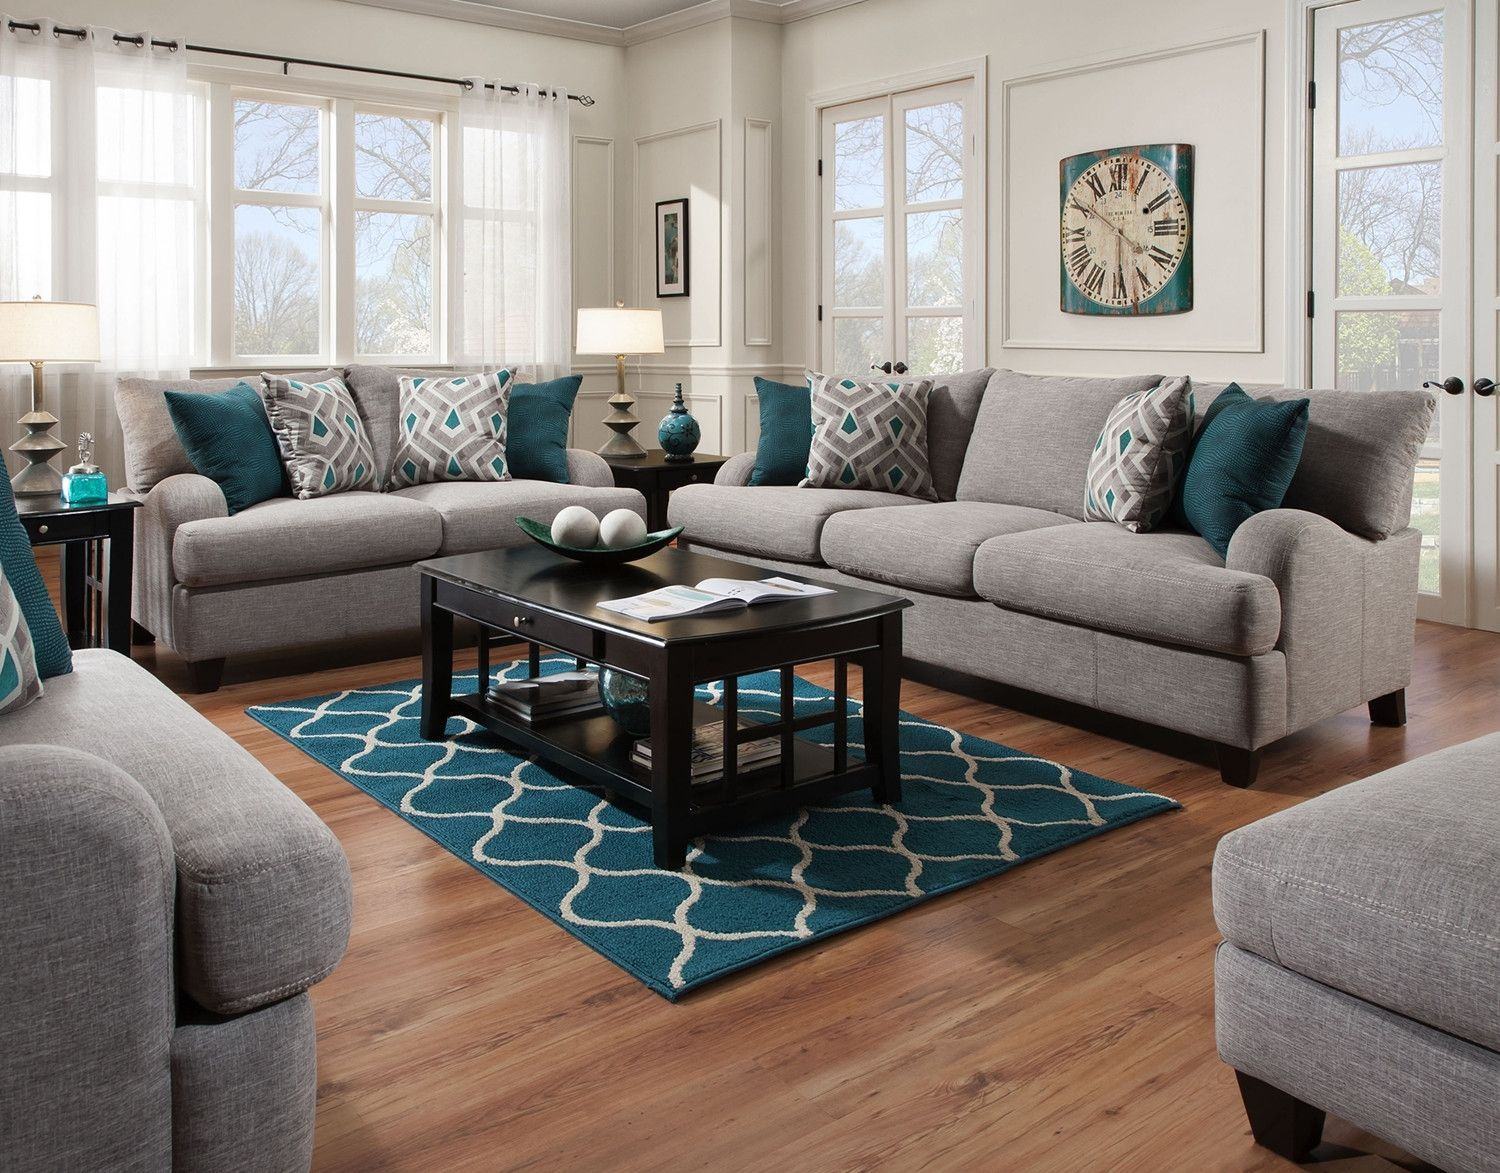 Gray Living Room Sets Modern No Coffee Table 892 The Paradigm Set Grey